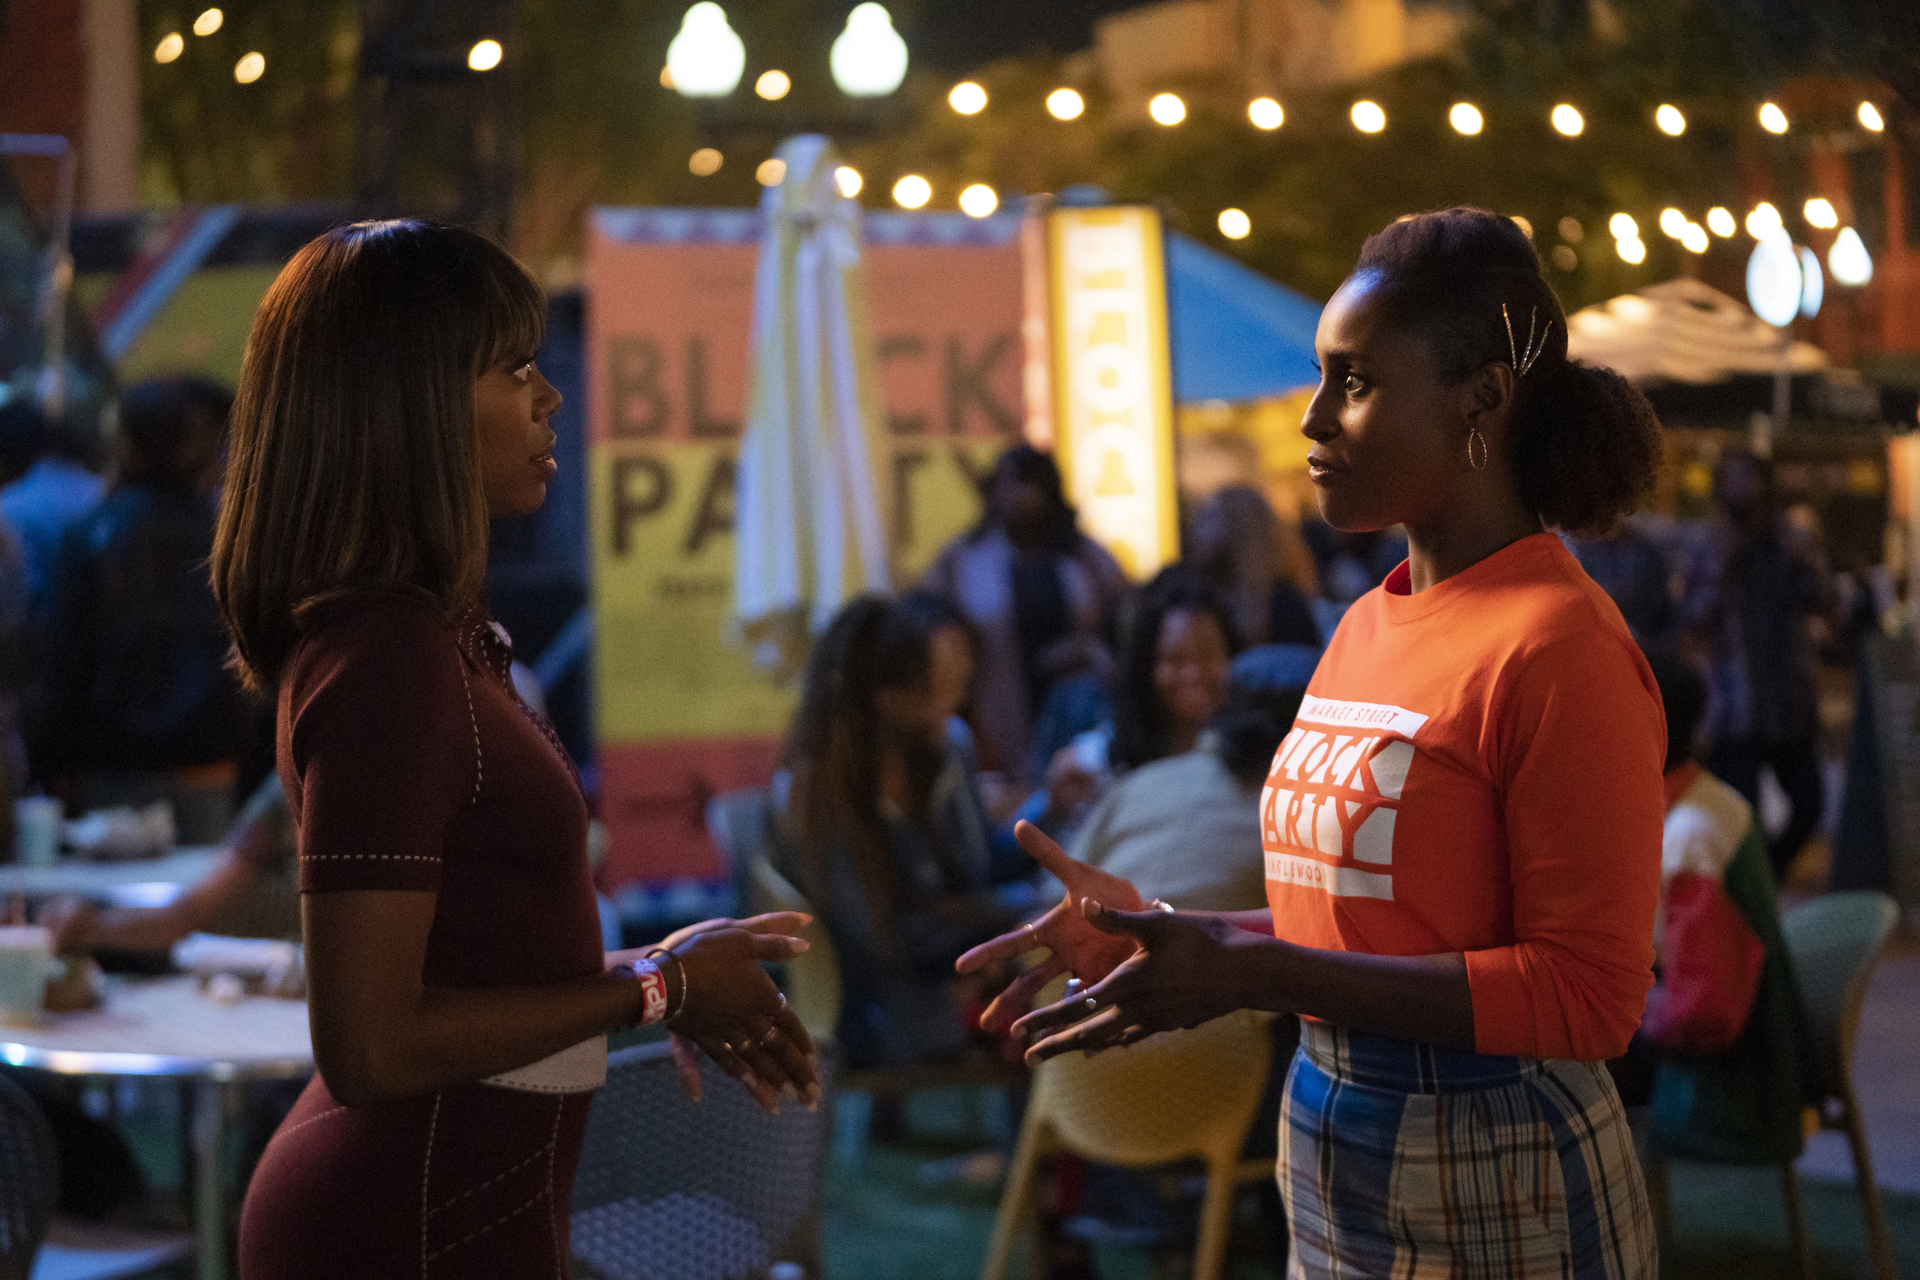 two Black women, Yvonne Orji and Issa Rae, look directly at one another during a block party on Insecure